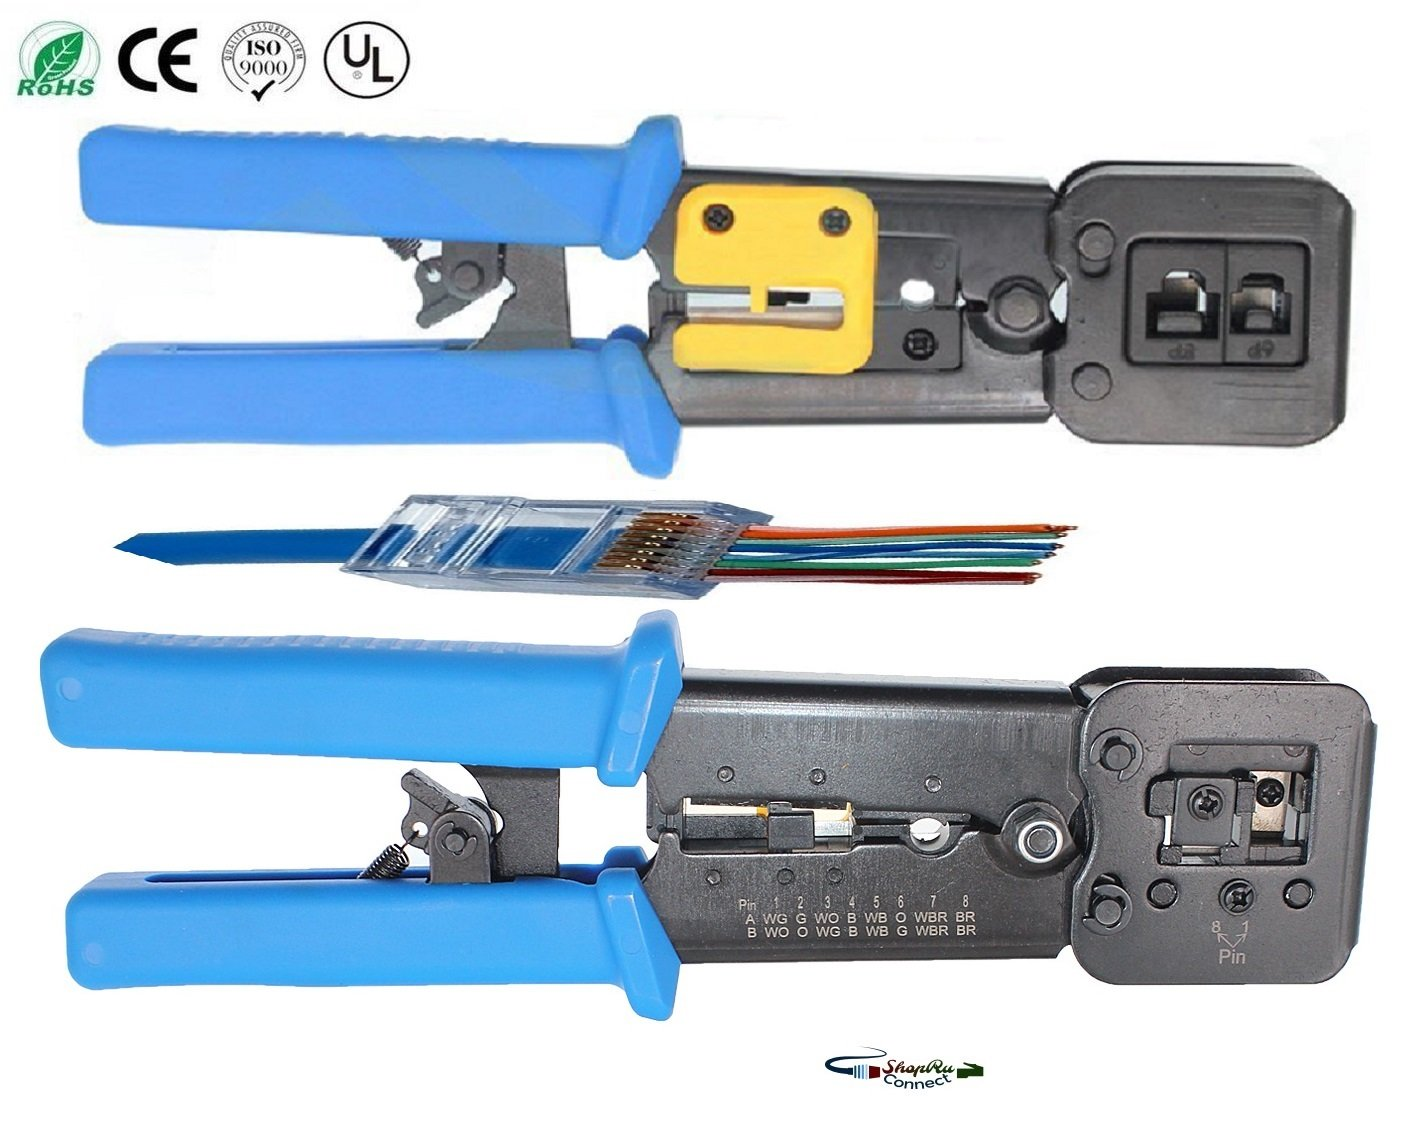 Ez Rj Professional Heavy Duty Crimp Tool Rj45 Pro Ethernet Plug Wiring Cutter For 45 Rj12 Rj11 Connector Hd Crimping With Wire Cable Stripper